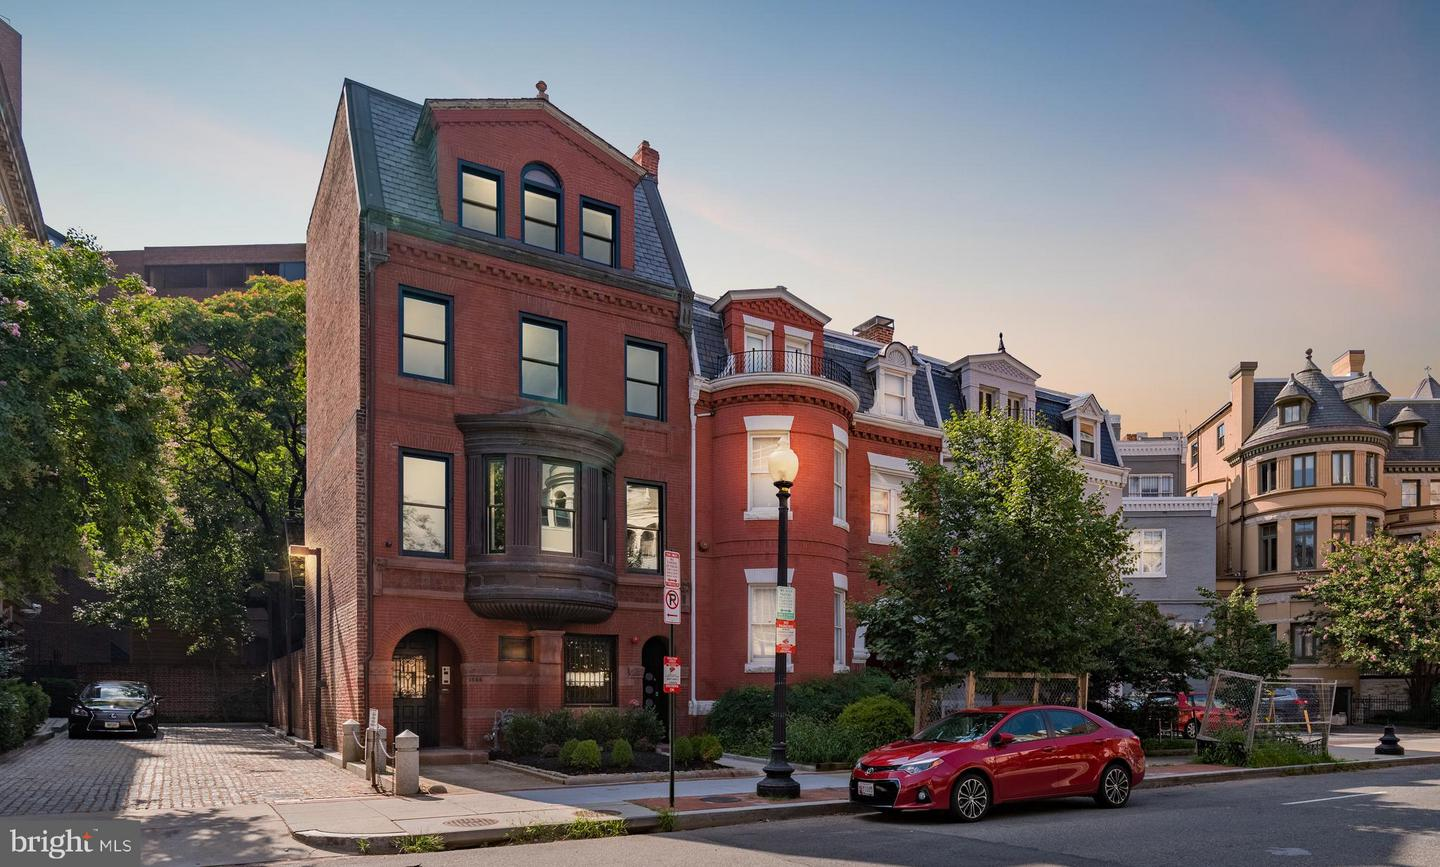 Single Family Home for Sale at 1524 18th St NW #1 1524 18th St NW #1 Washington, District Of Columbia 20036 United States